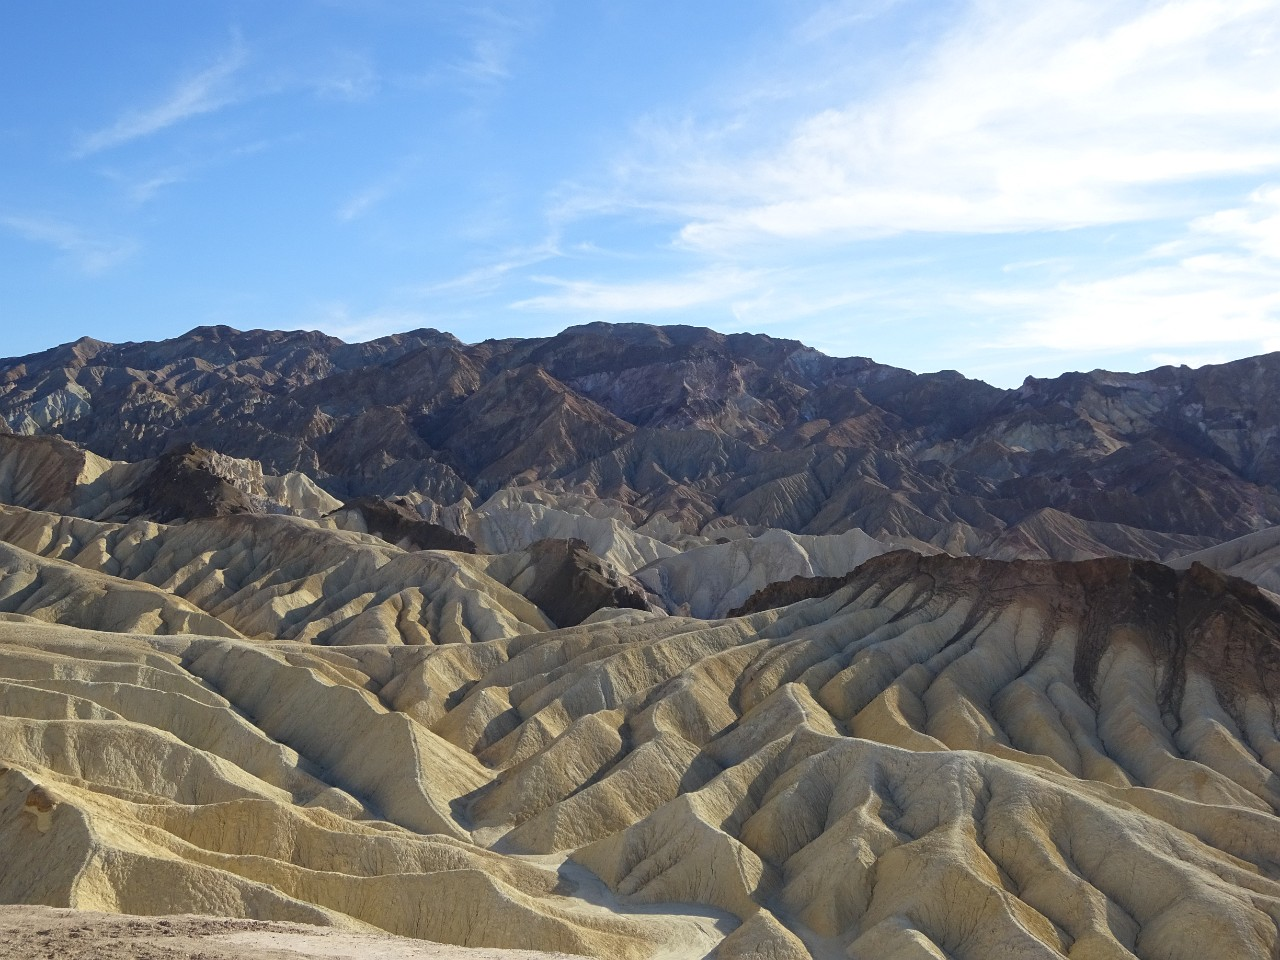 Zabriskie point volcanic formation